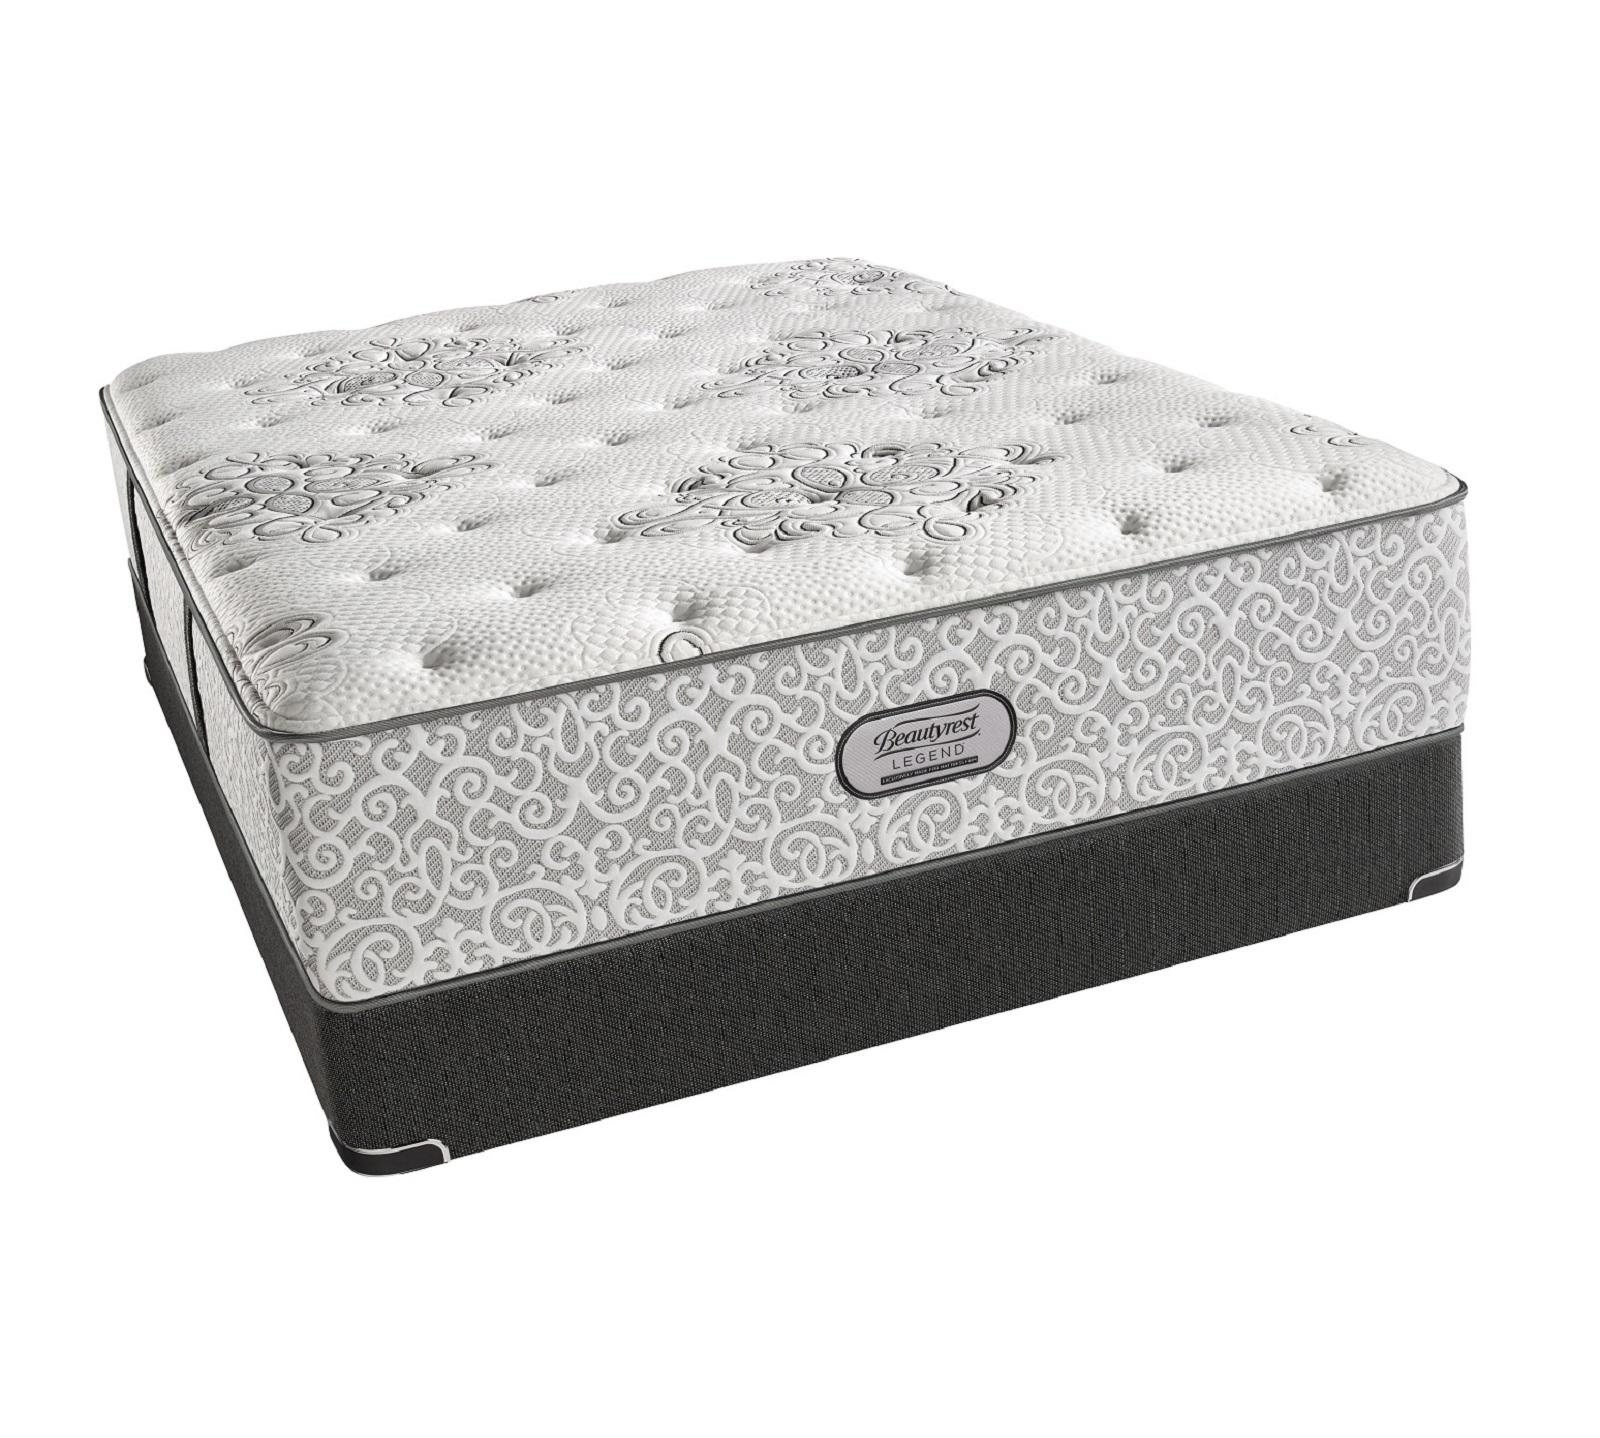 Beautyrest Mattress Queen  USA